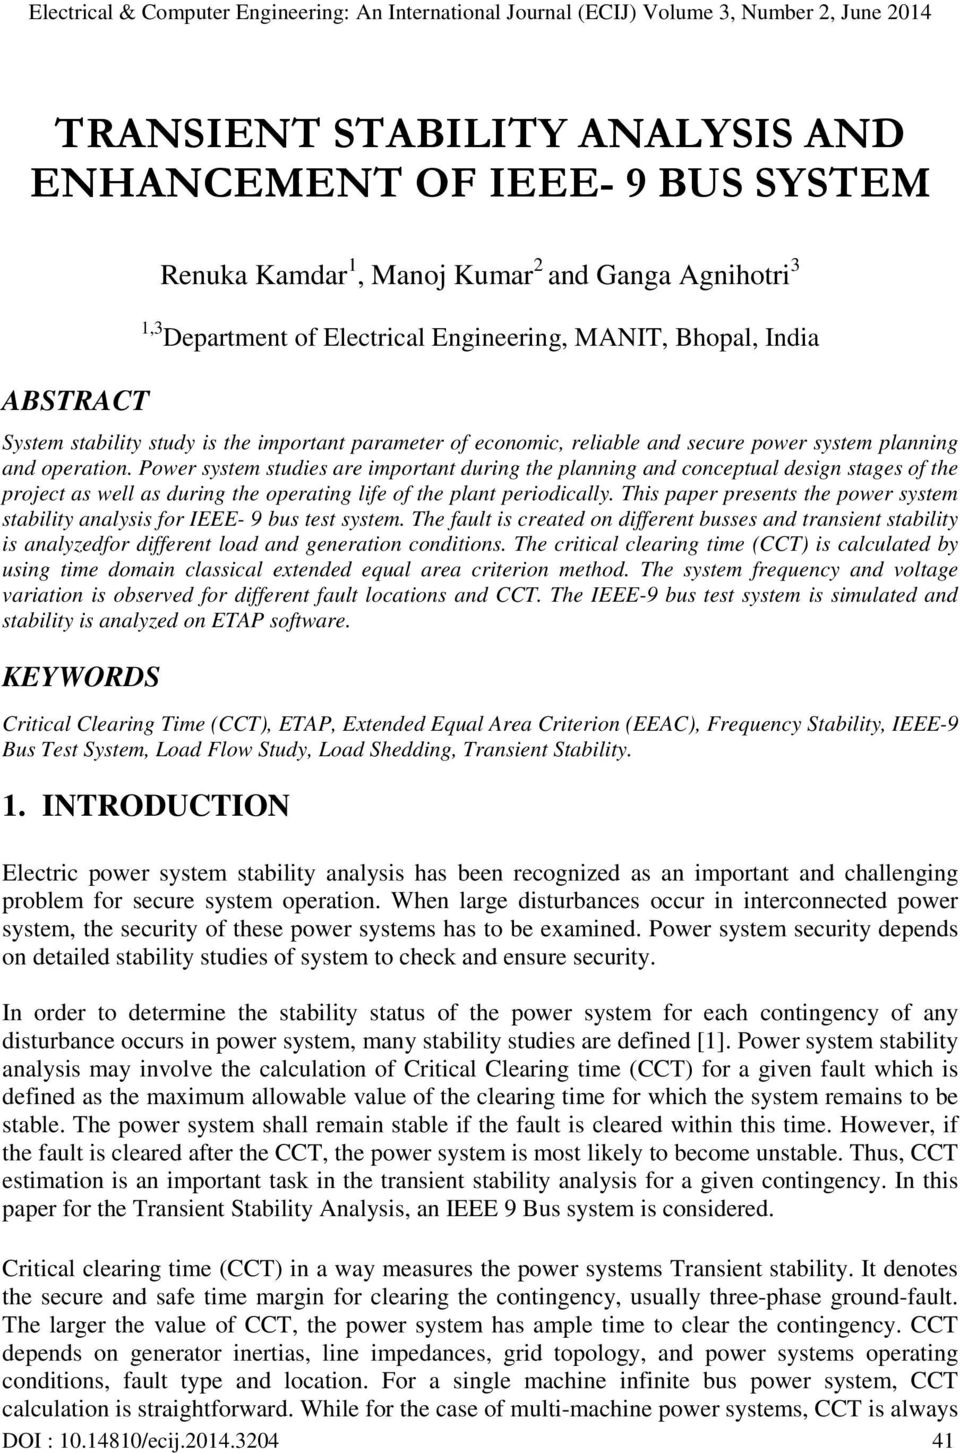 TRANSIENT STABILITY ANALYSIS AND ENHANCEMENT OF IEEE- 9 BUS